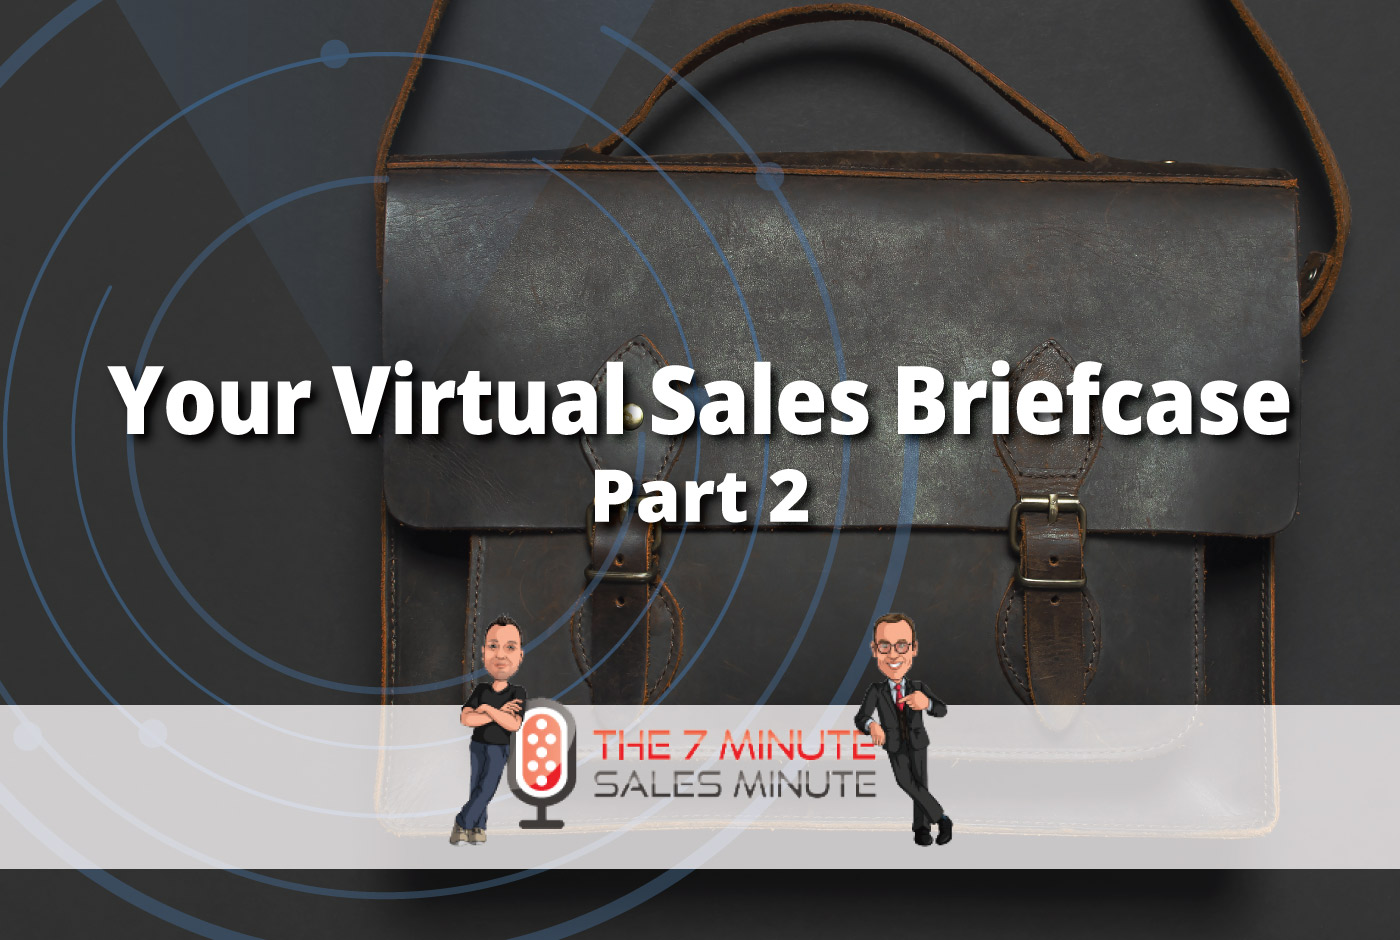 7 Minute Sales Minute Podcast - Season 13 - Episode 7 - Your Virtual Sales Briefcase - Part 2